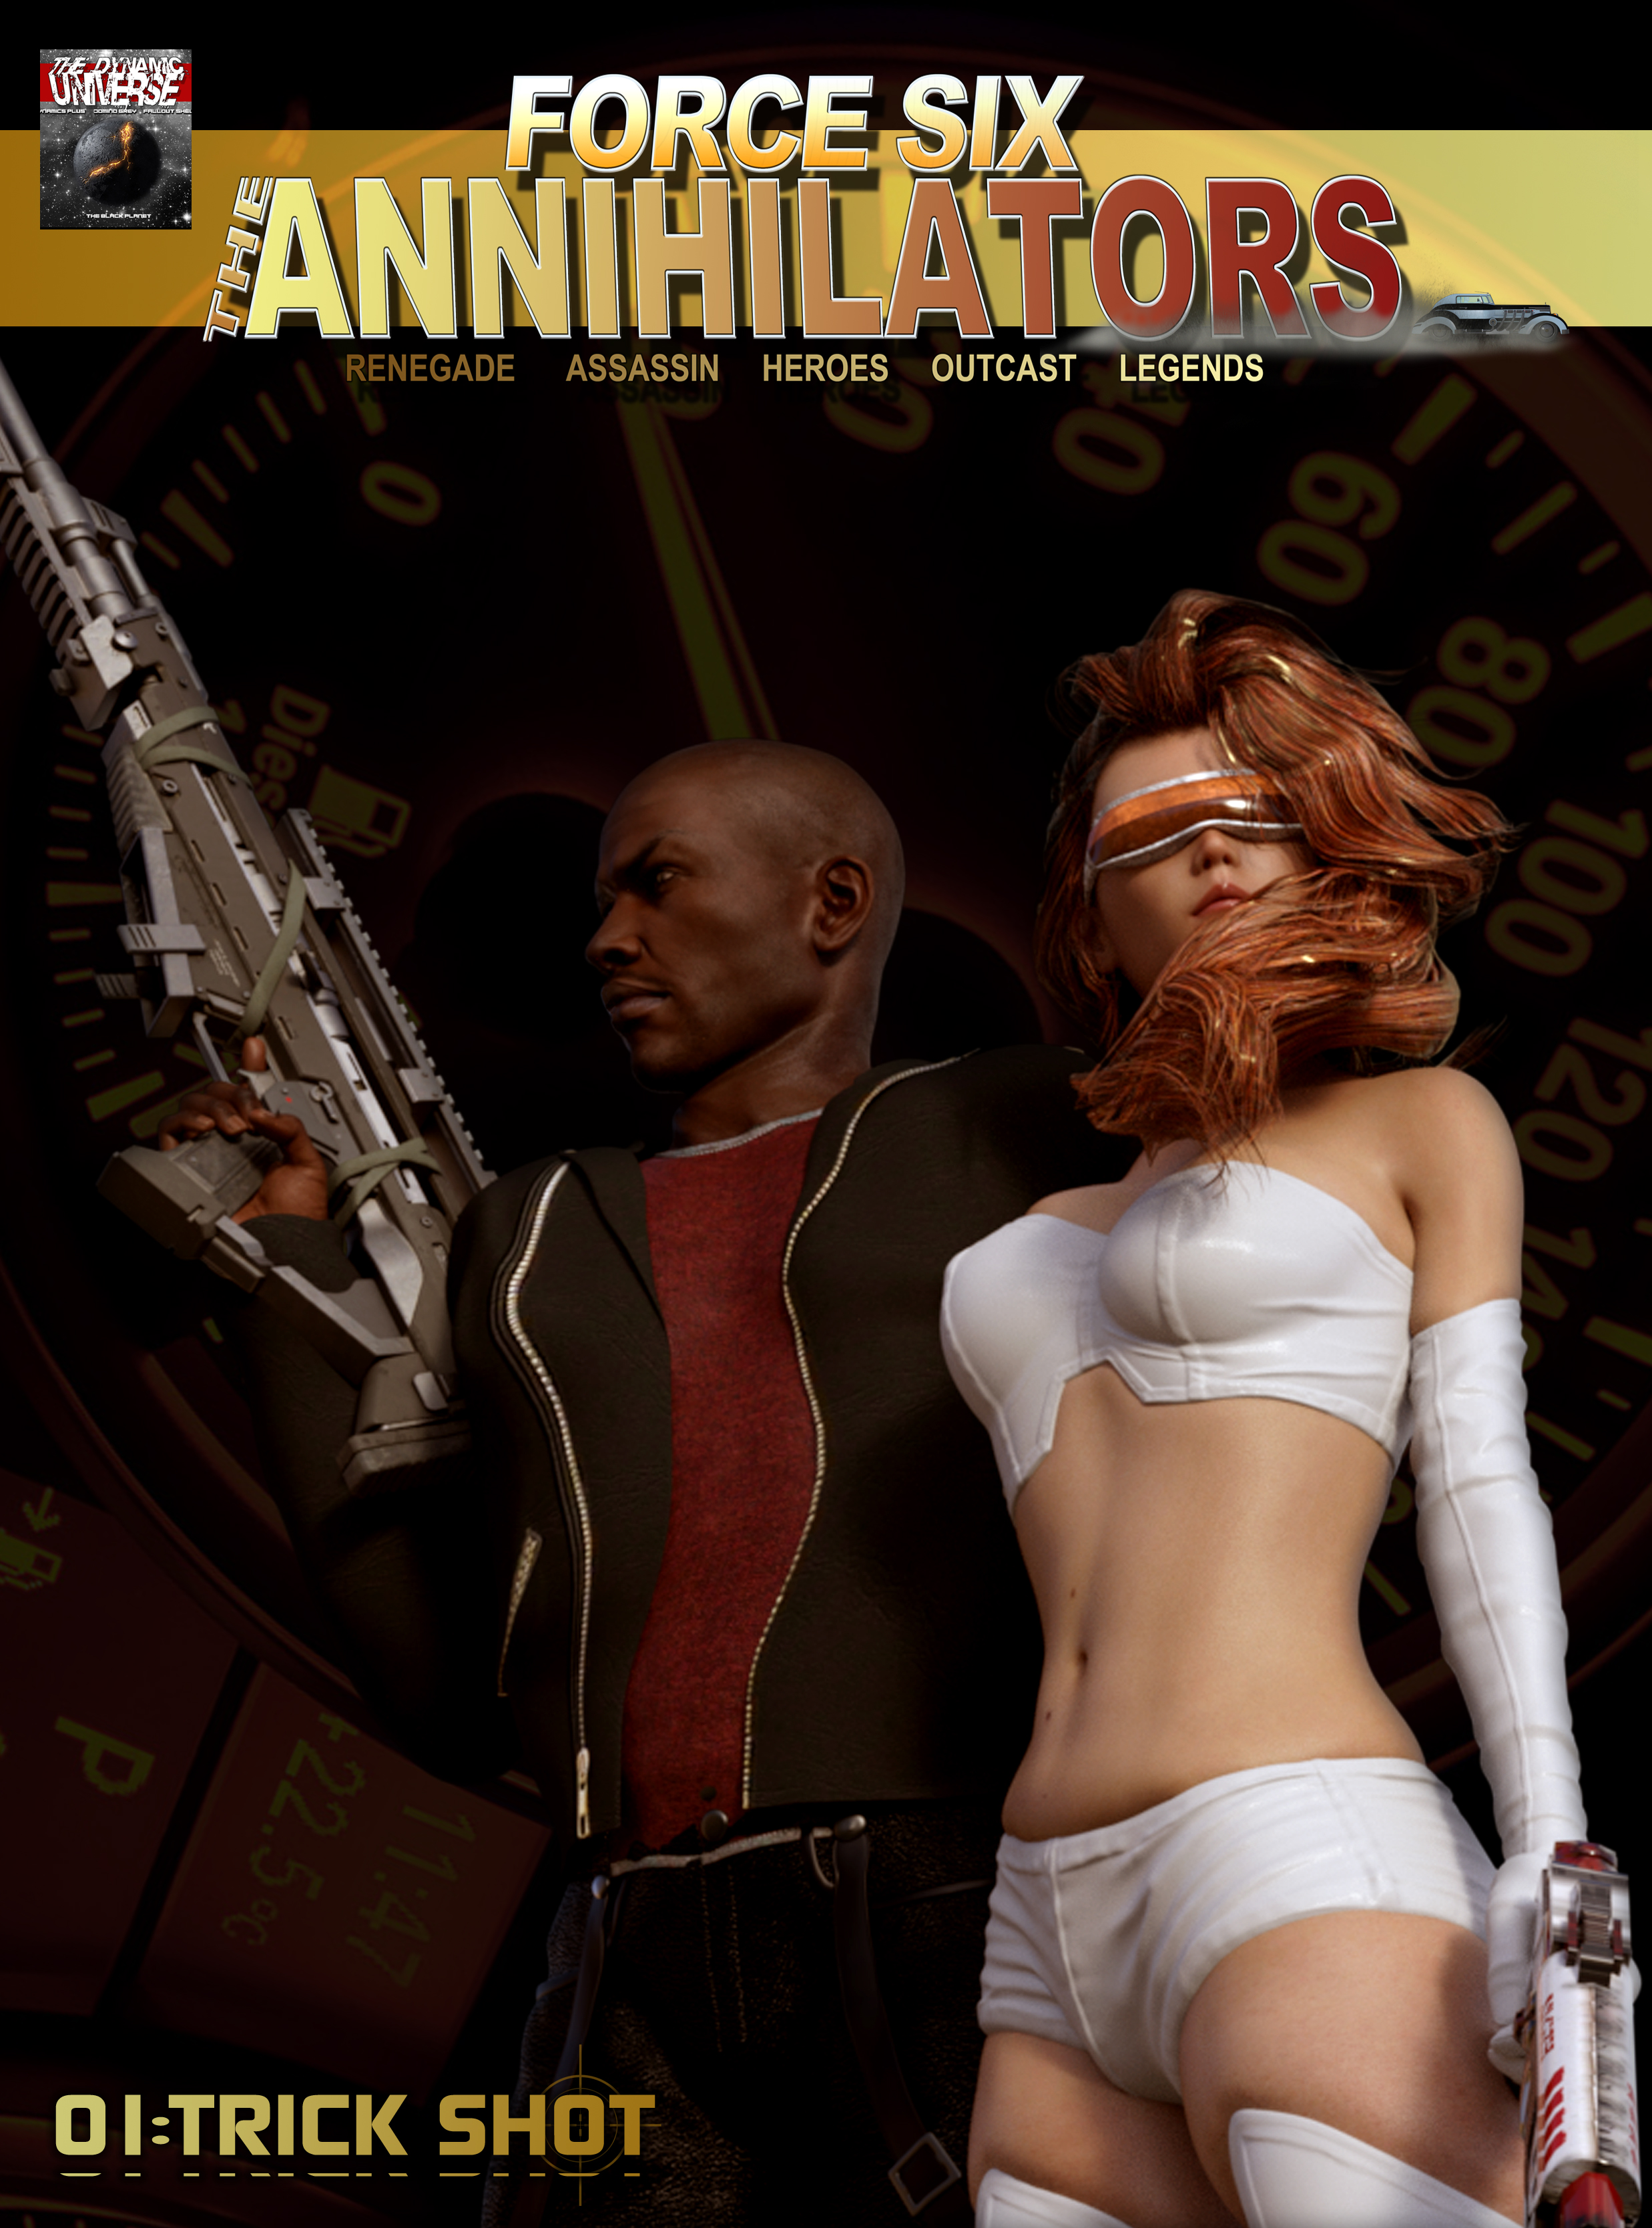 Force Six The Anniliators comic cover